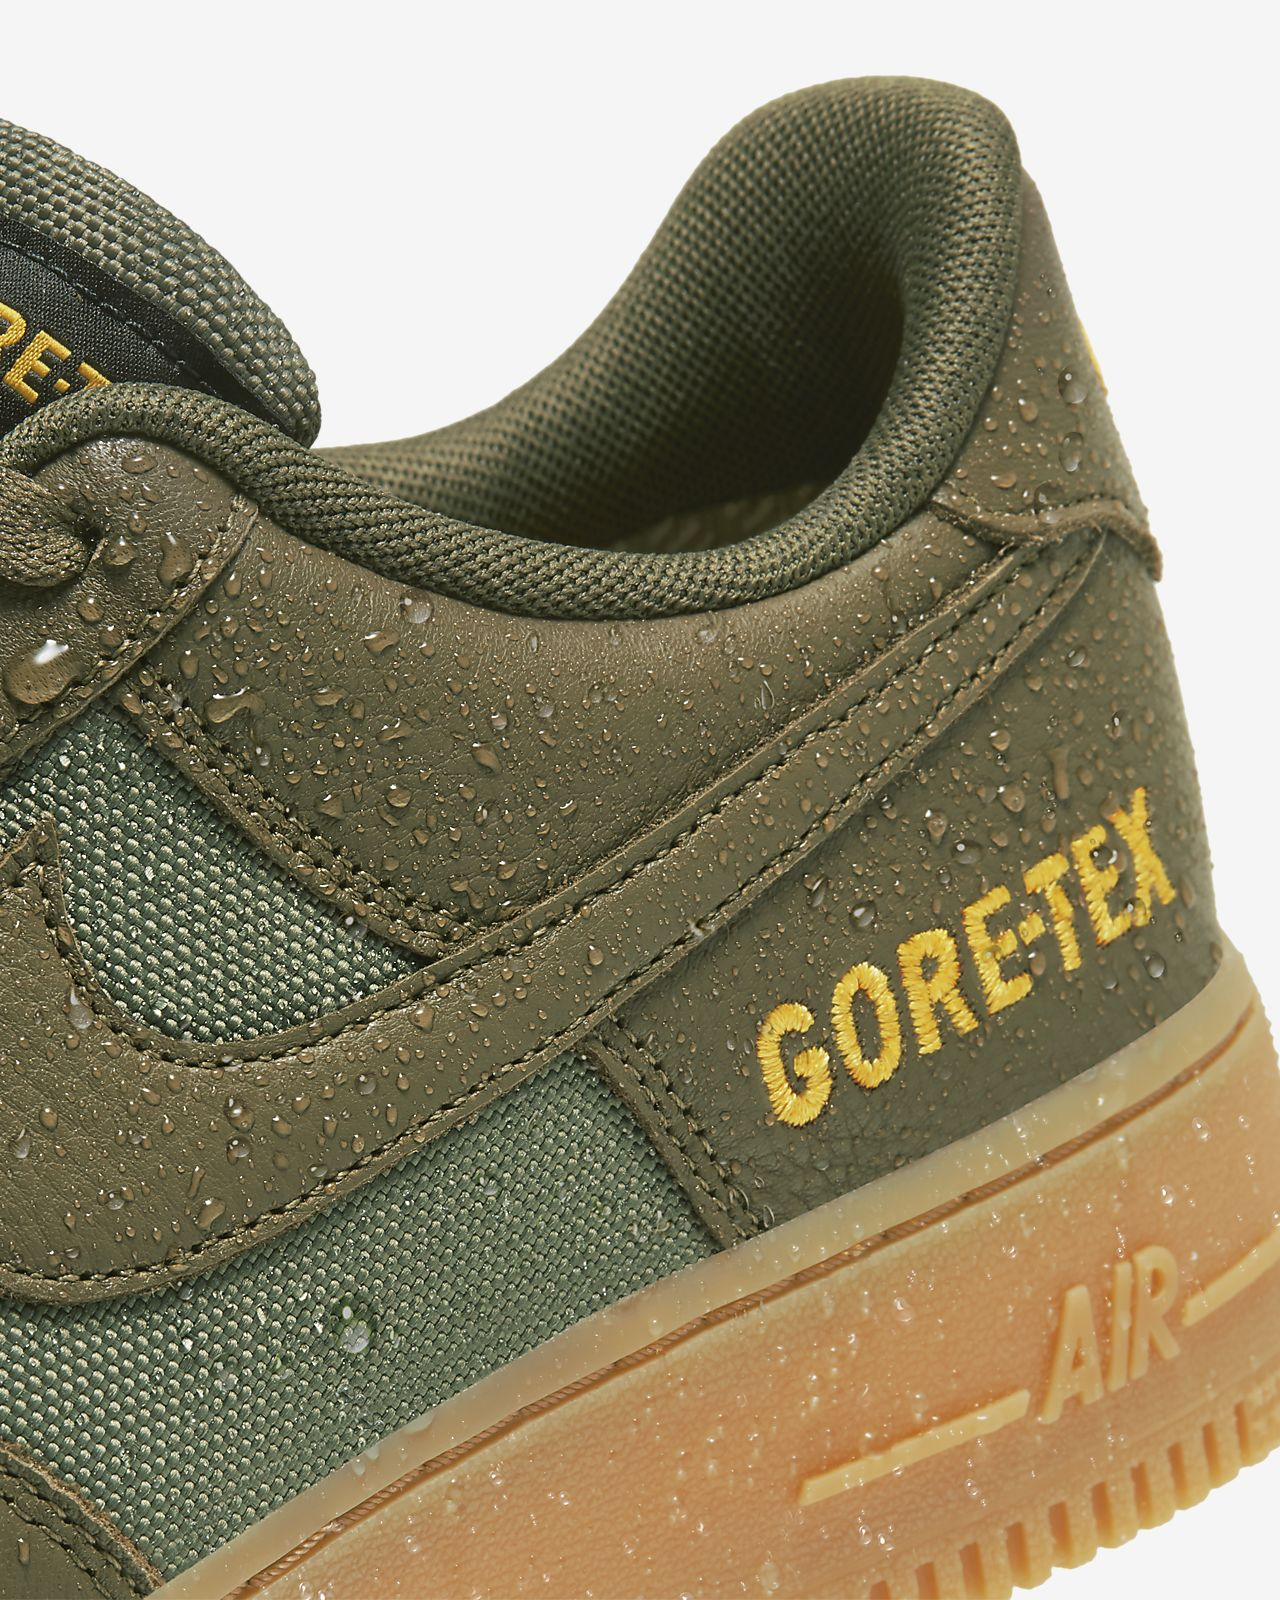 air force 1 x goretex